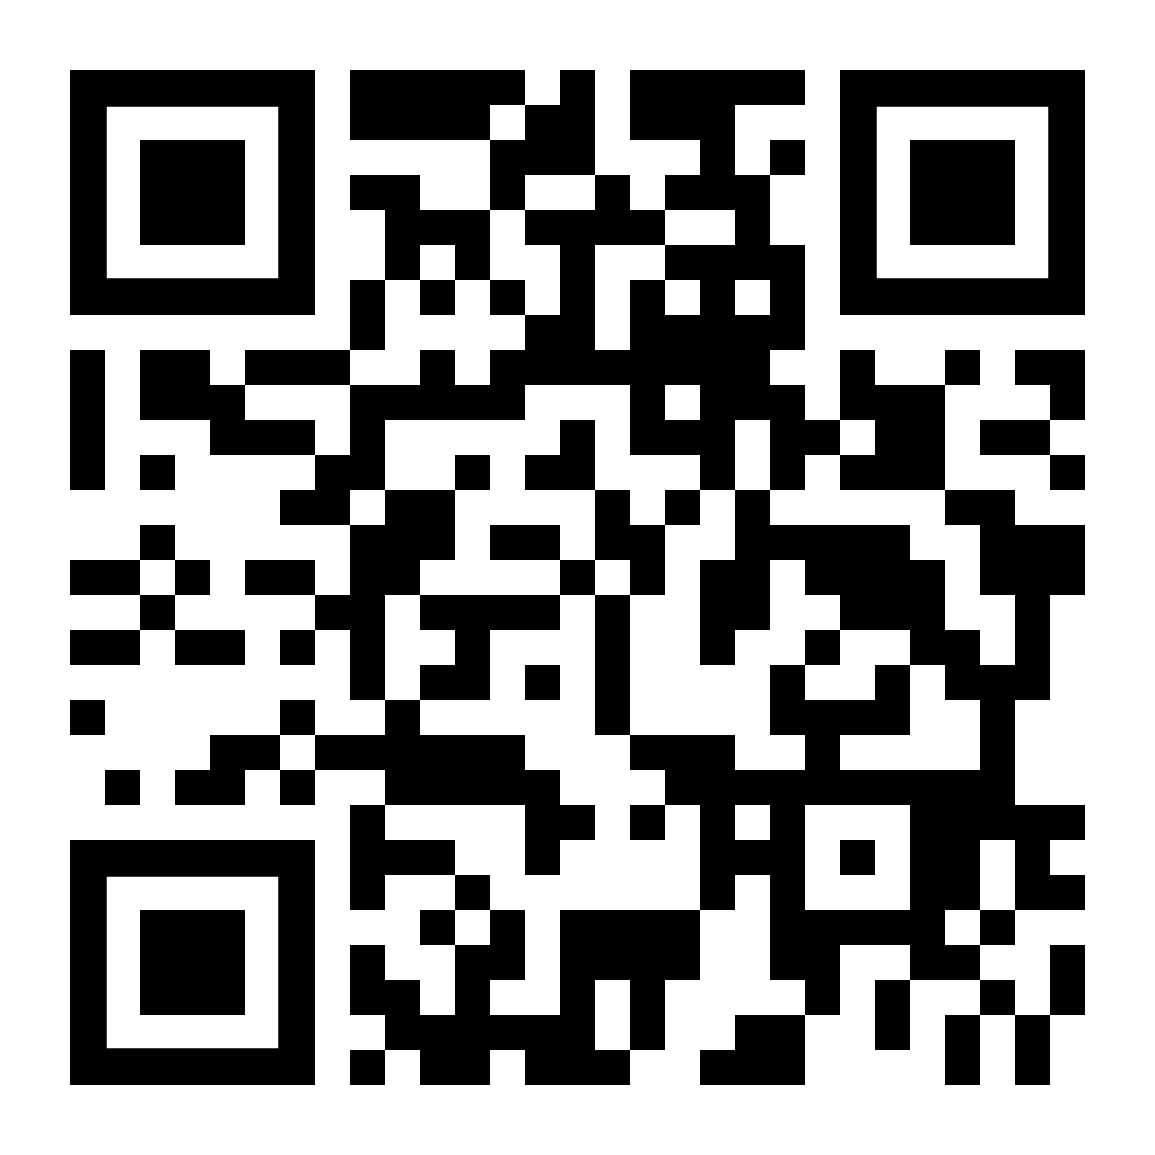 QR code leading to Elegant Themes Twitter Channel